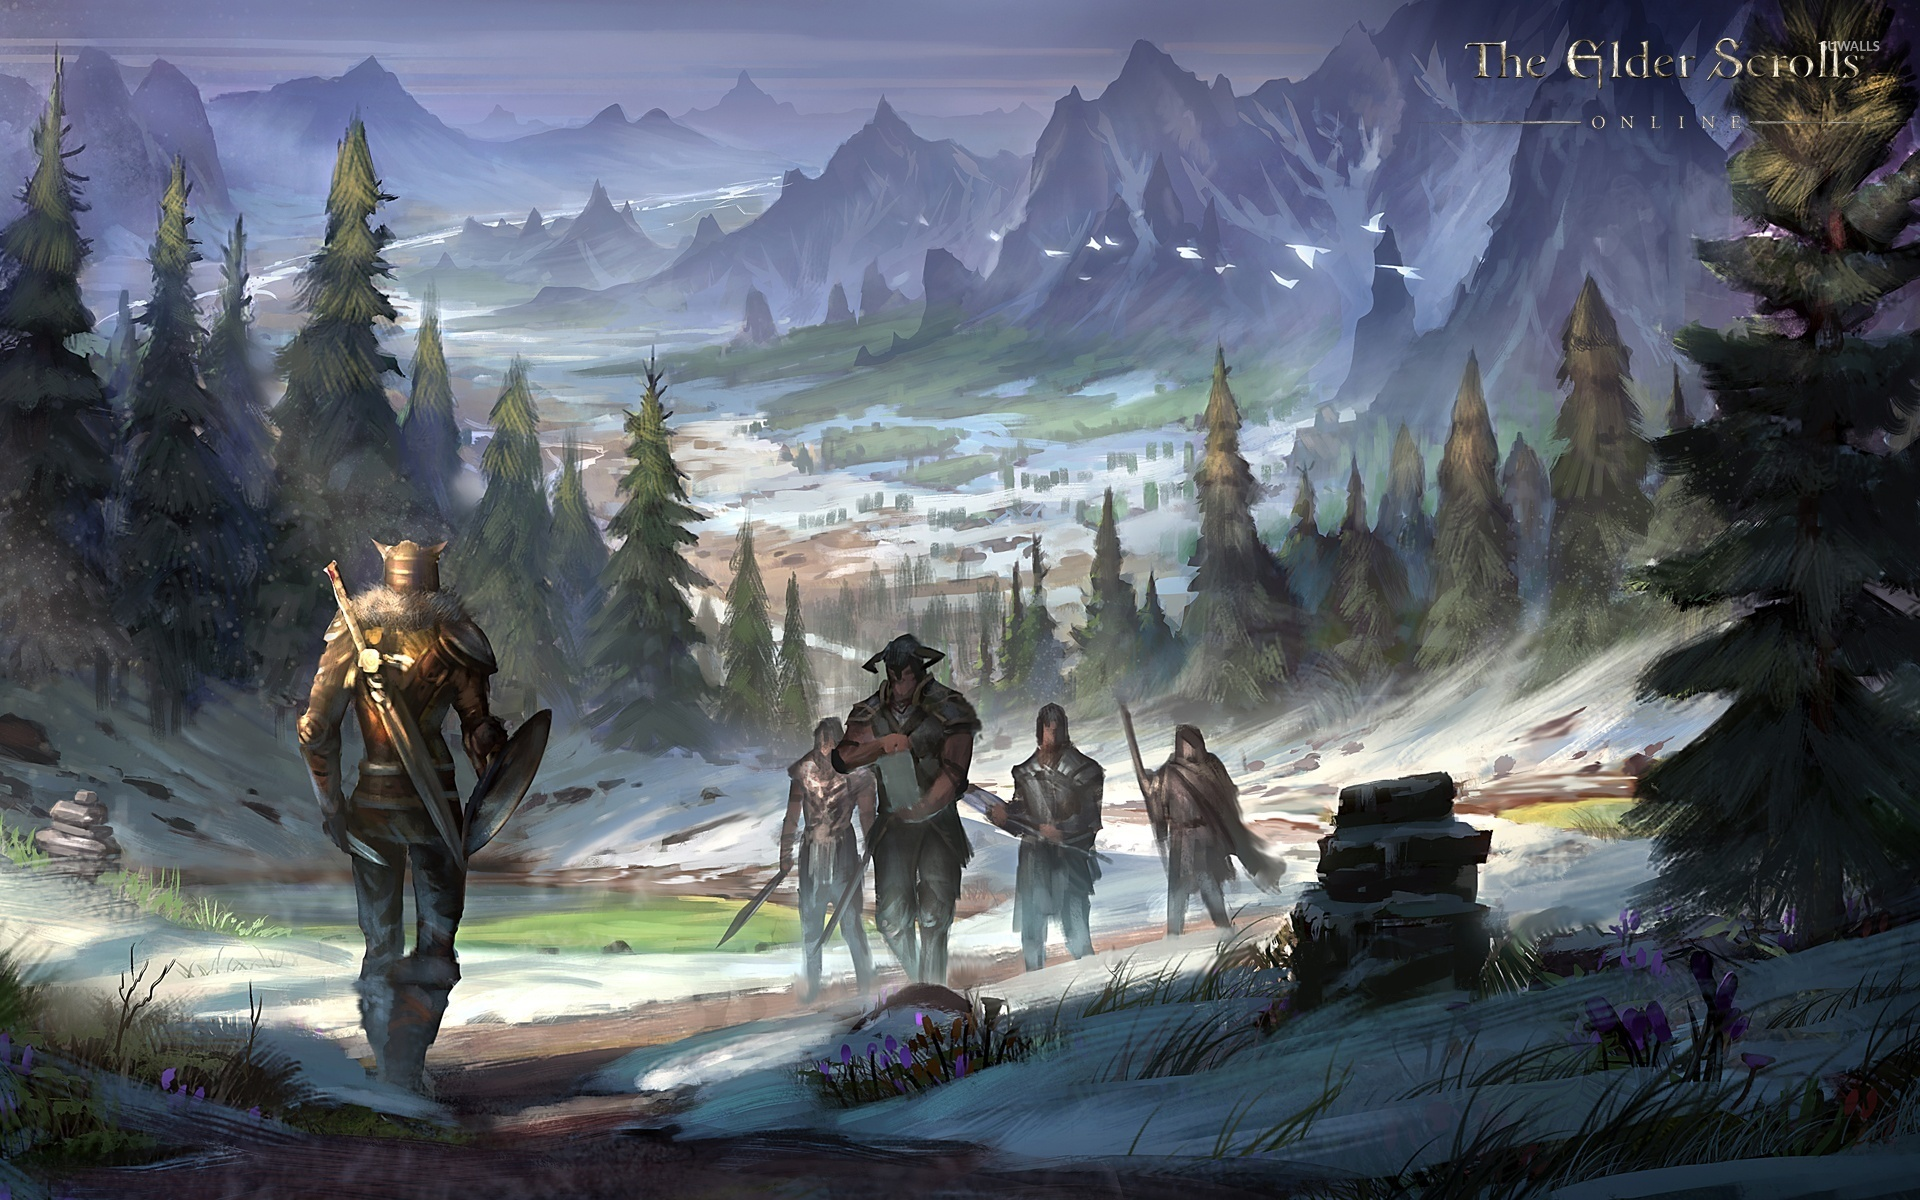 The Elder Scrolls Online 9 Wallpaper Game Wallpapers 21509